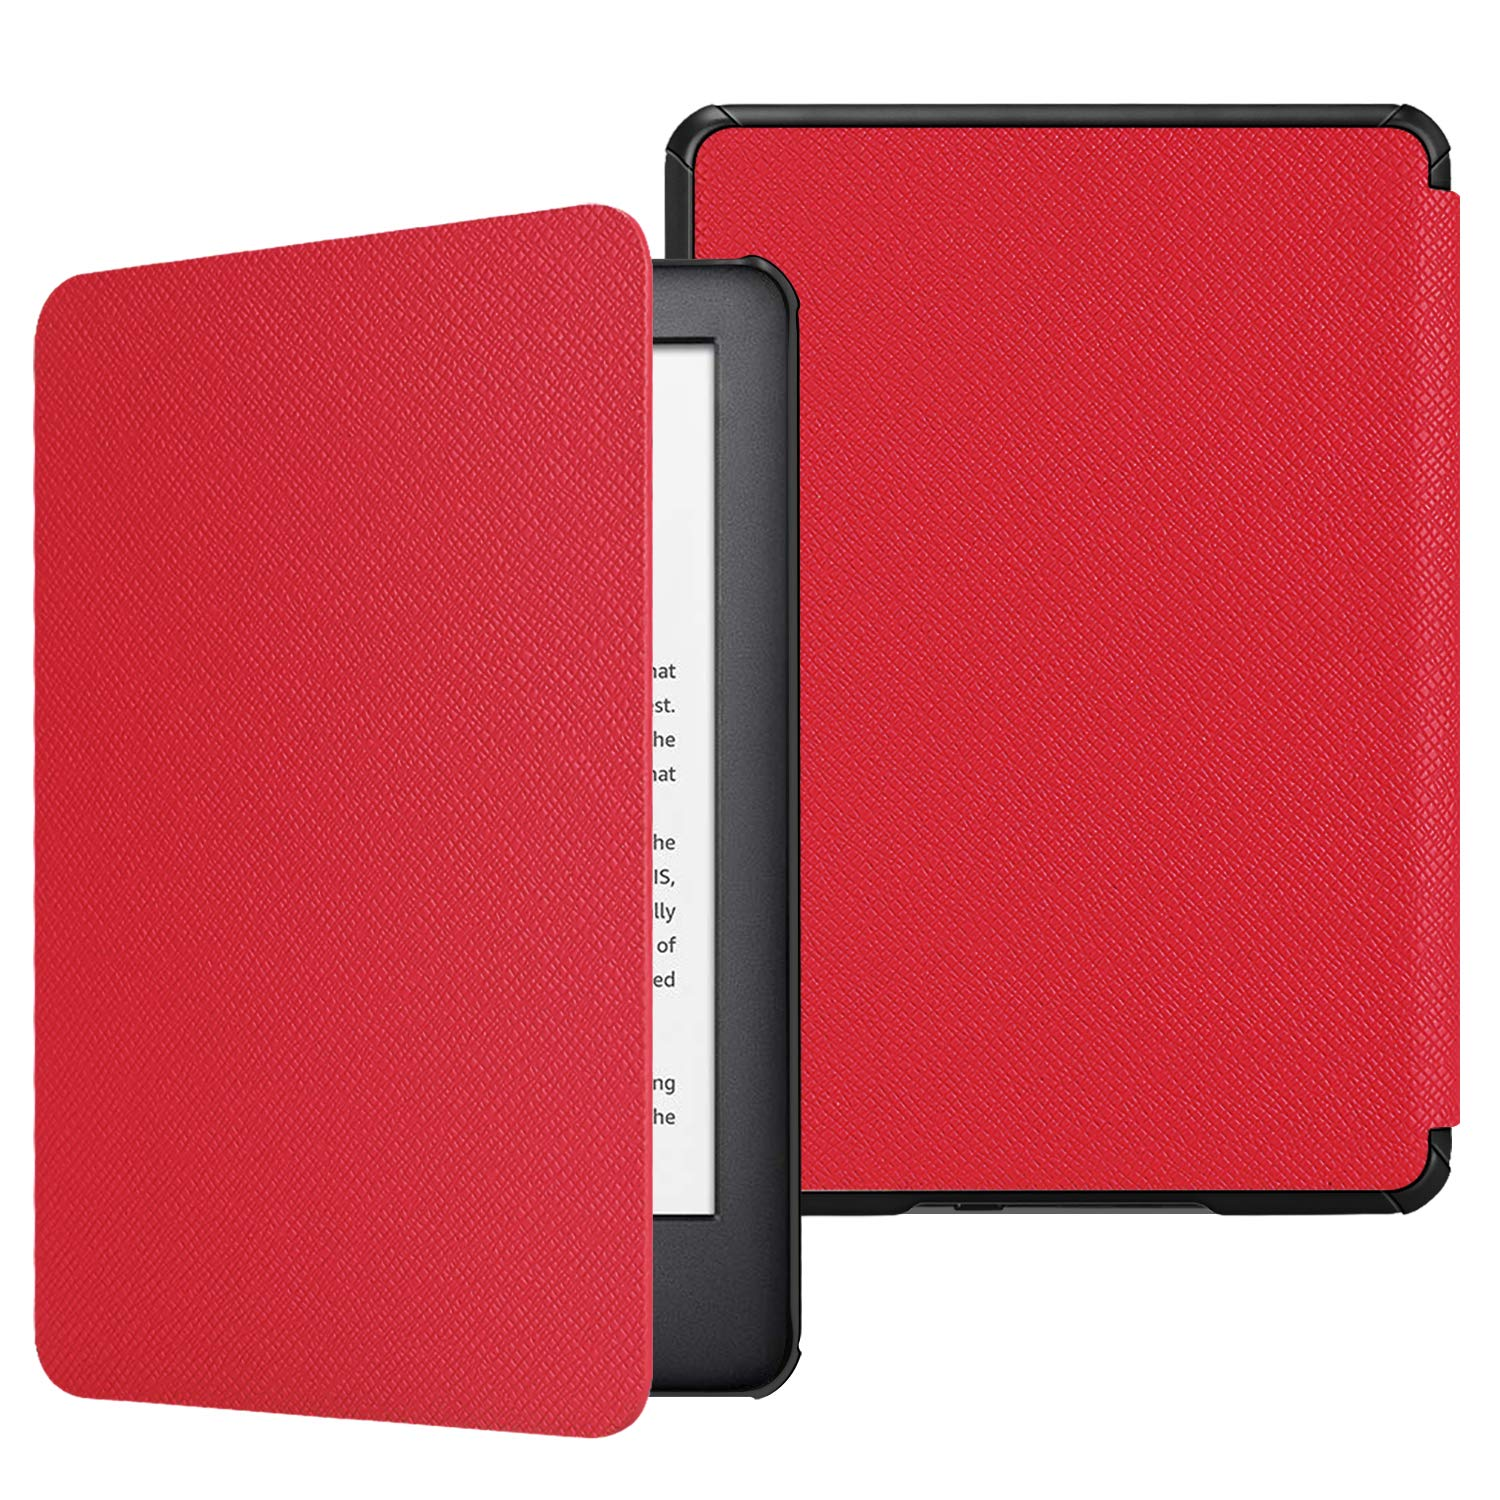 Fintie Slimshell Case for All-New Kindle (10th Generation, 2019 Release) - Lightweight Premium PU Leather Cover with Auto Sleep/Wake (NOT Fit Kindle Paperwhite or Kindle 8th Gen), Red